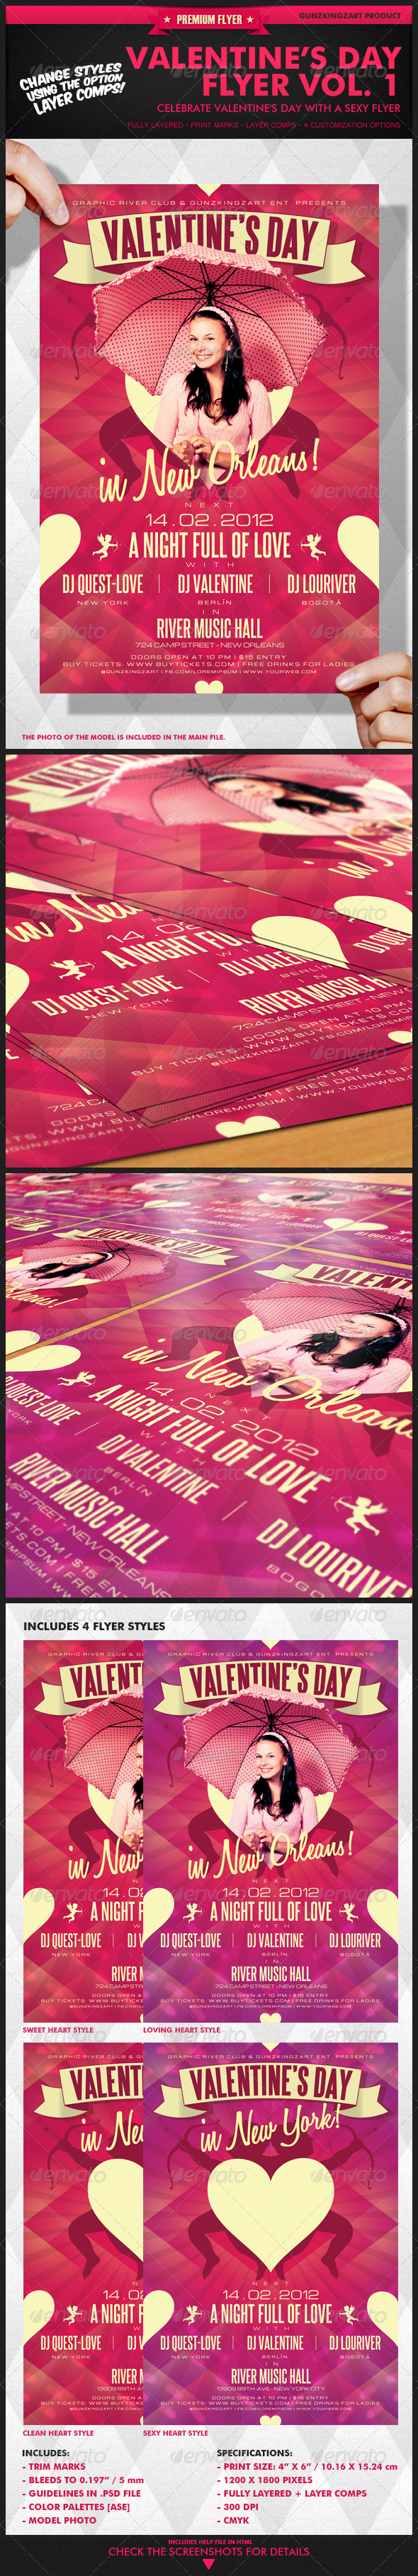 Valentine's Day Flyer Vol. 1 - Clubs & Parties Events